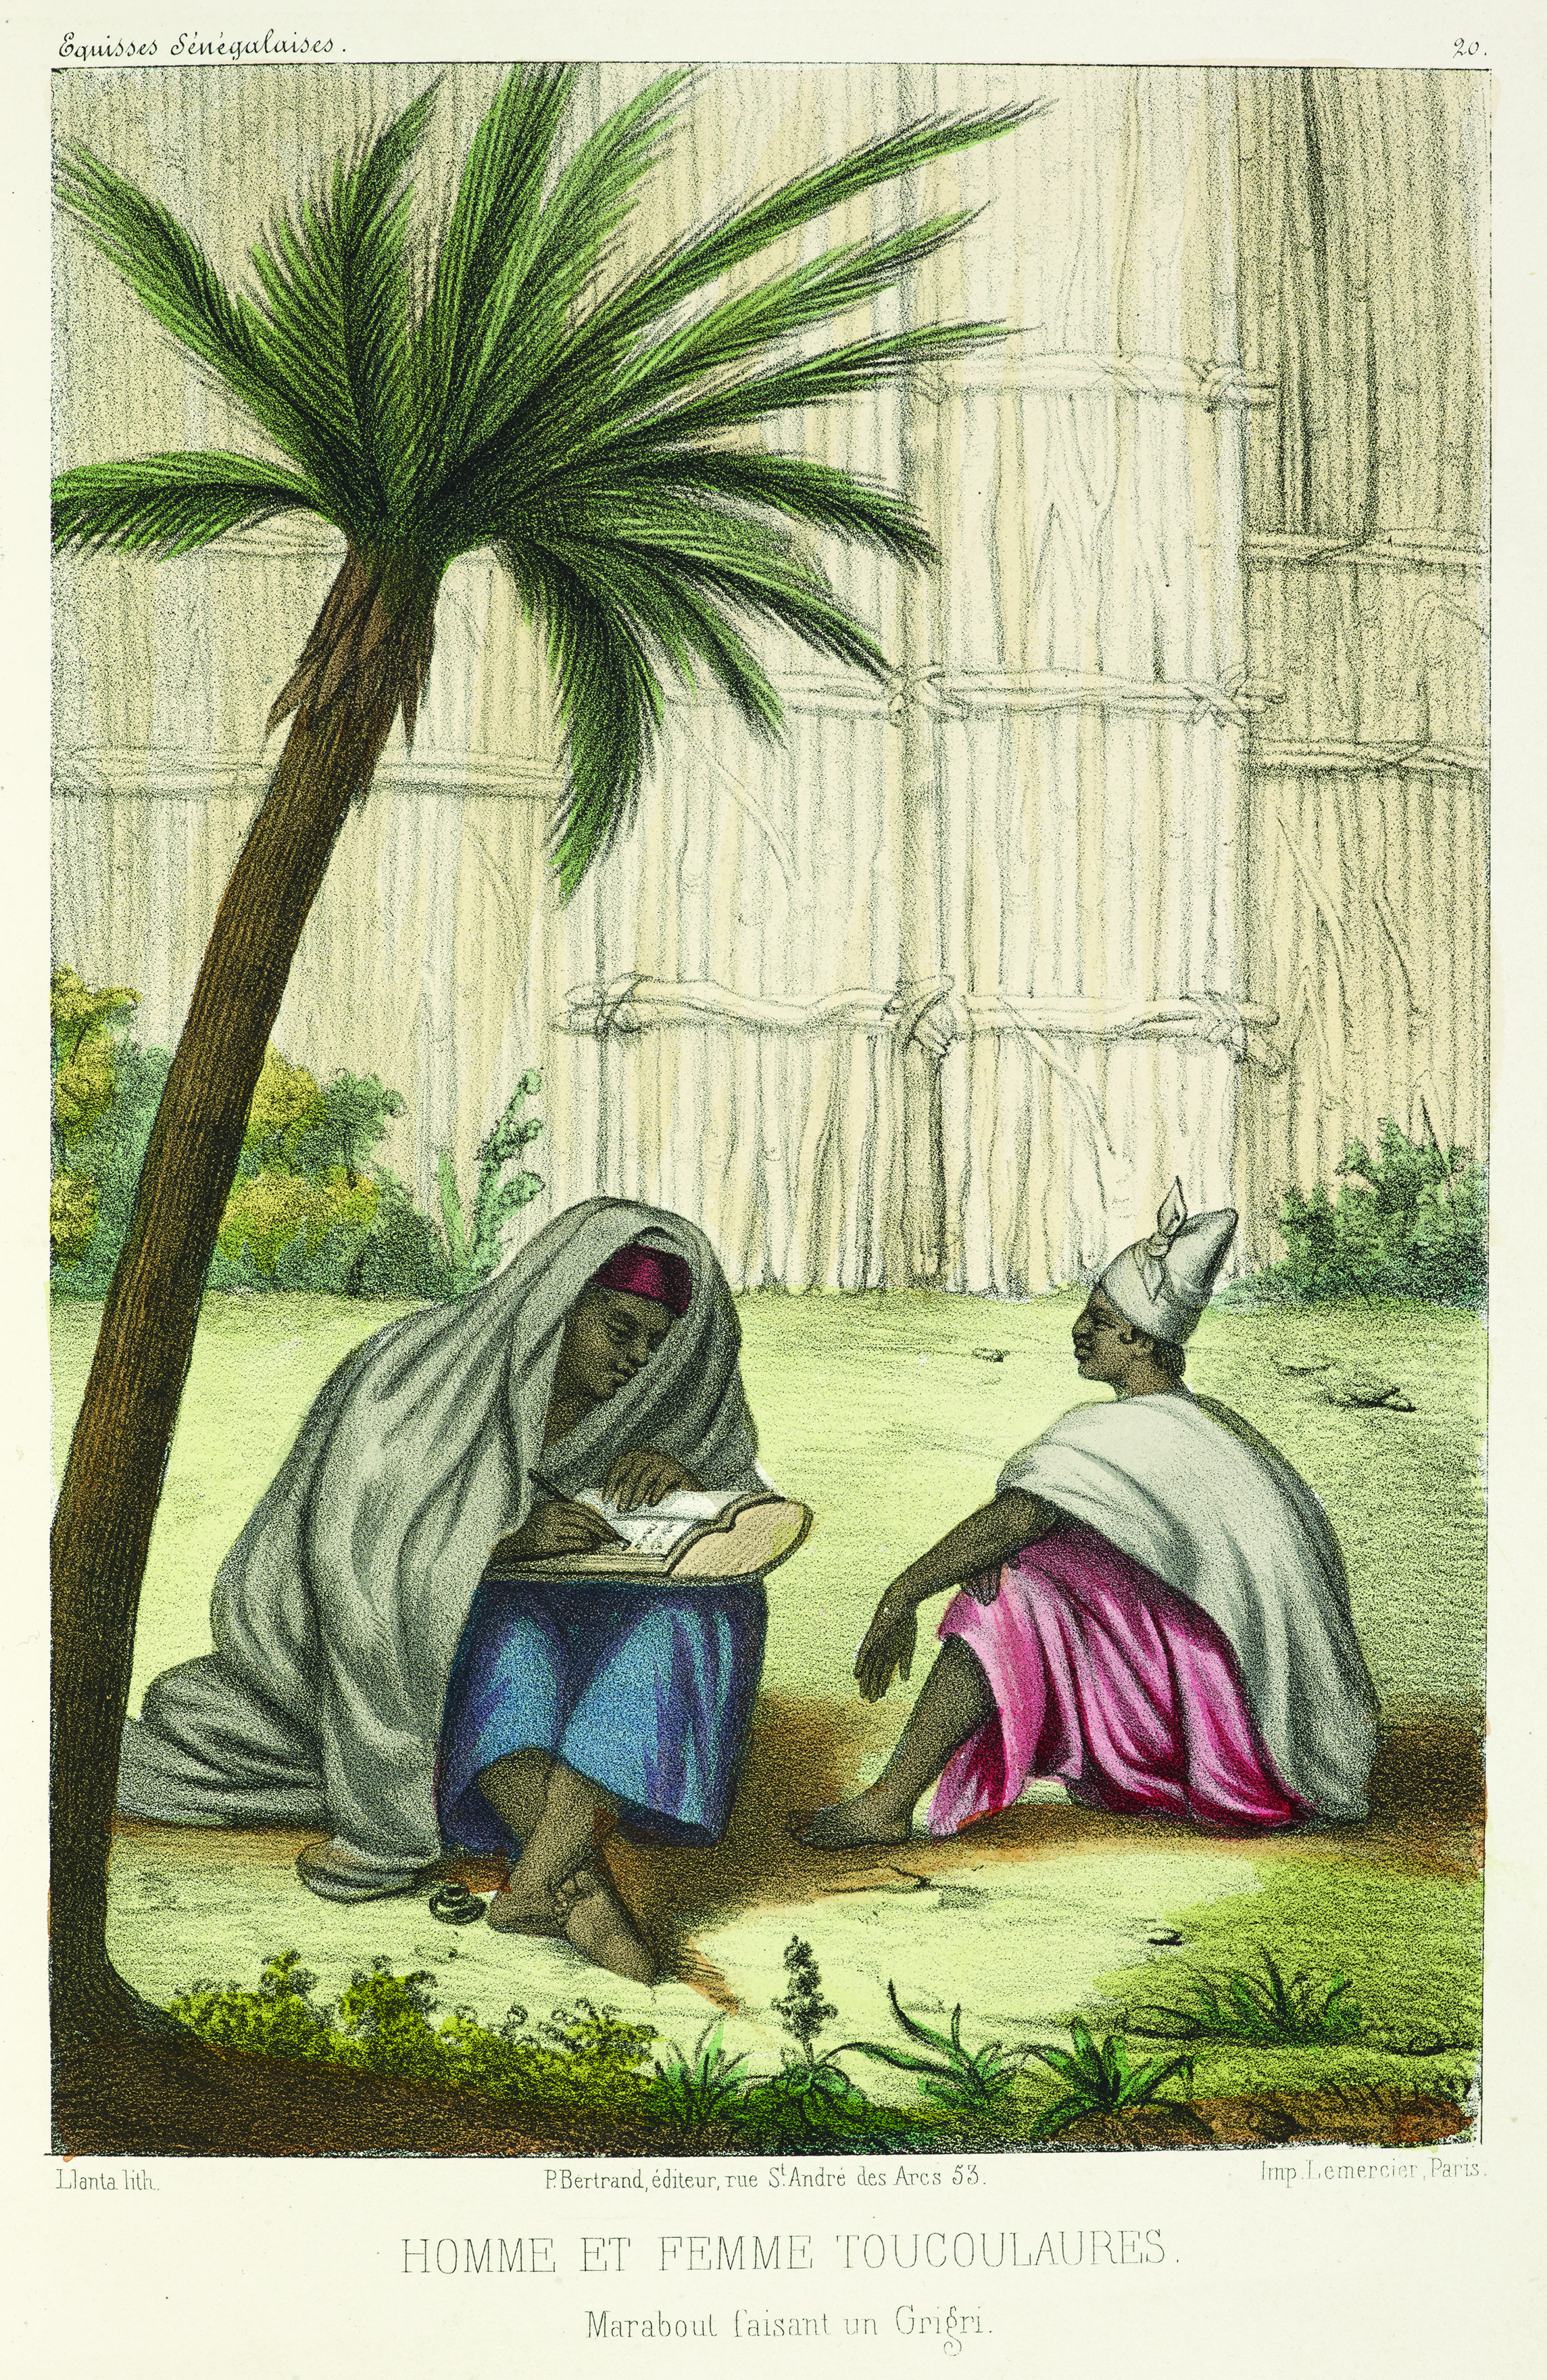 An illustration showing a marabout or Muslim religious leader writing an amulet for a widow, from P. D Boilat's Esquisses sénégalaises (1853), going on display in West Africa at the British Library. Photography courtesy of the British Library.